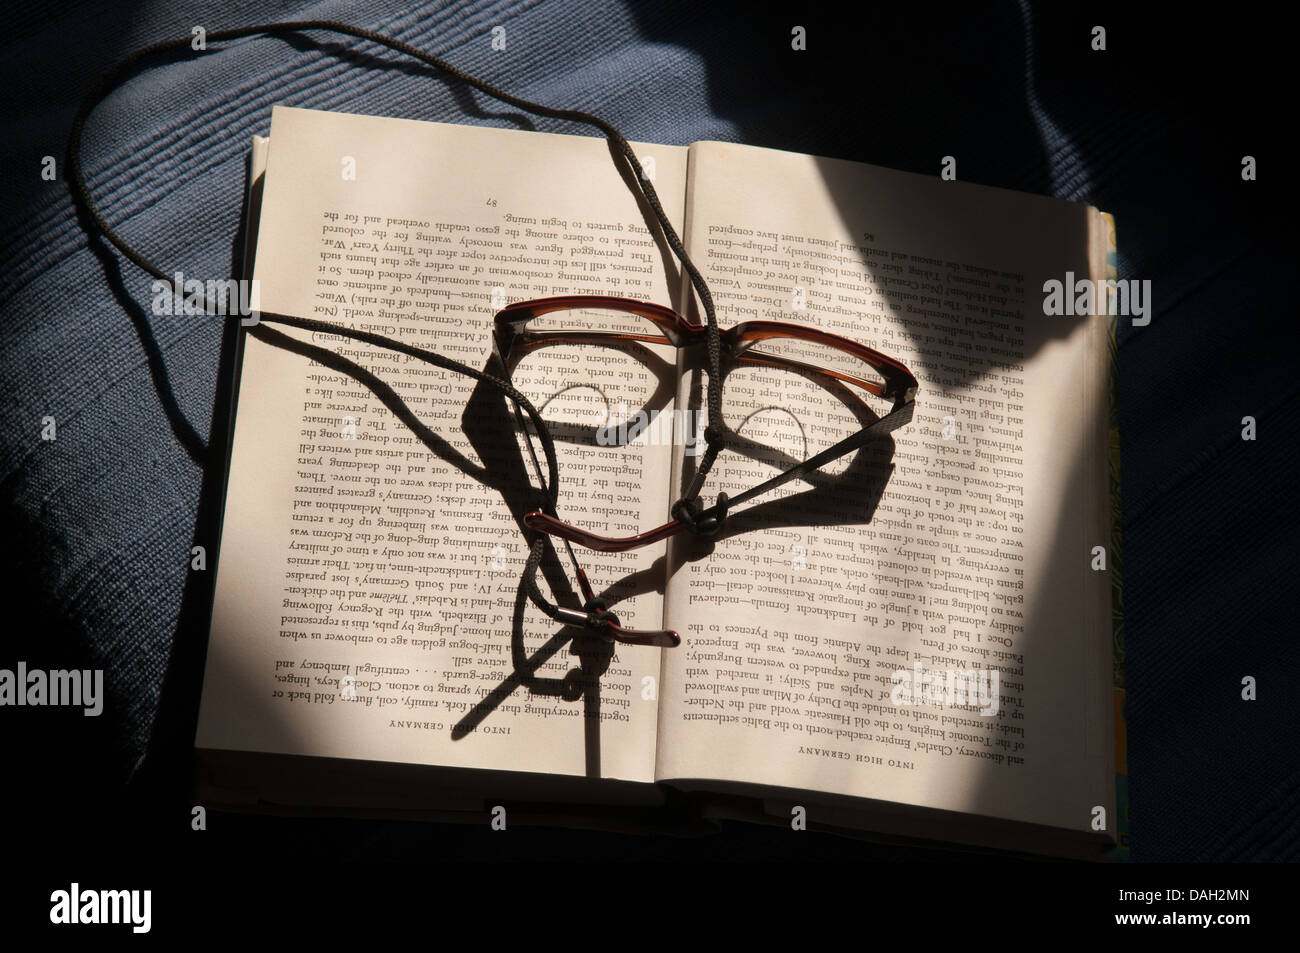 Glasses on a book in a ray of light. - Stock Image